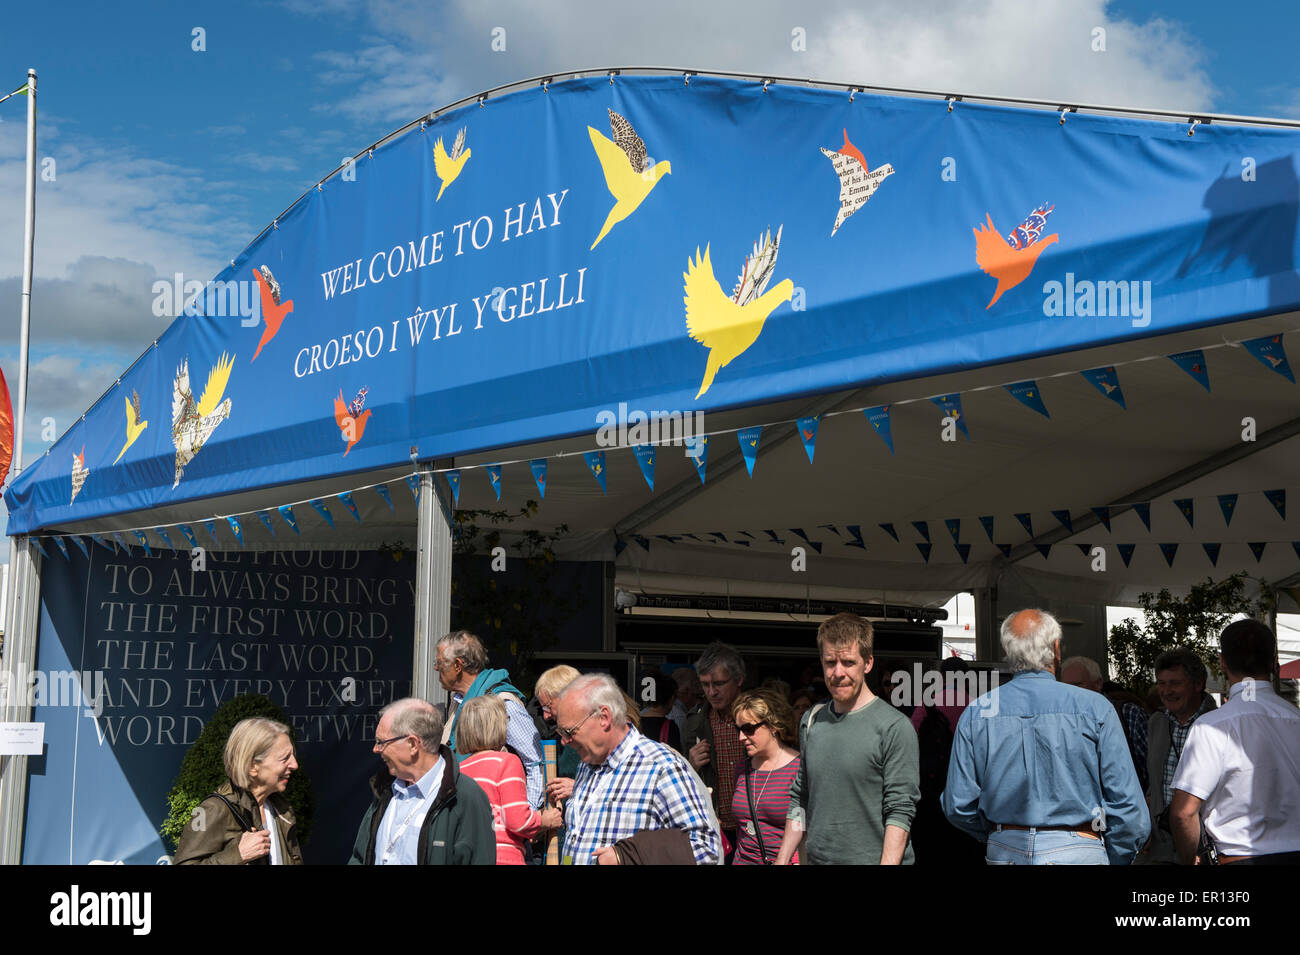 Hay-on-Wye, Wales, UK. 24th May, 2015. The main entrance to the Hay Festival on May 24, 2015 in Hay-on-Wye, Wales. - Stock Image